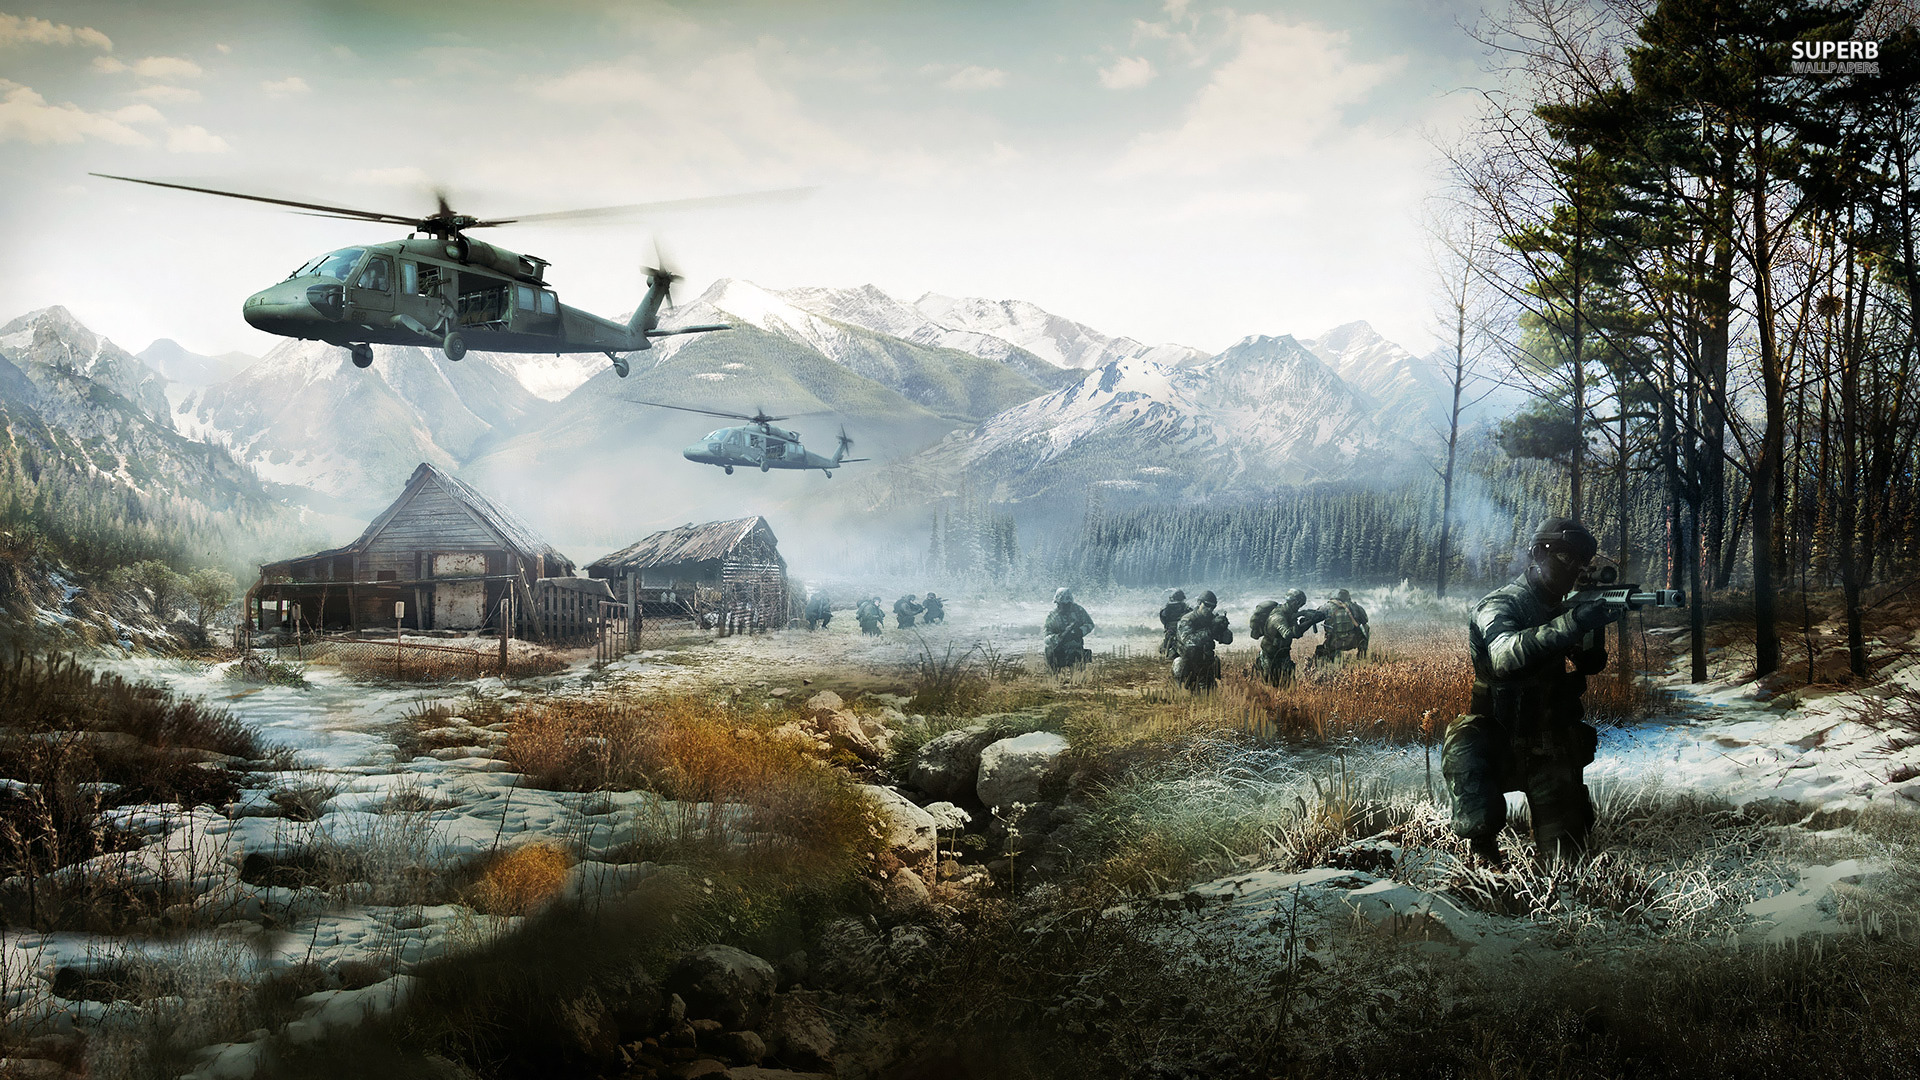 battlefield wallpaper A1